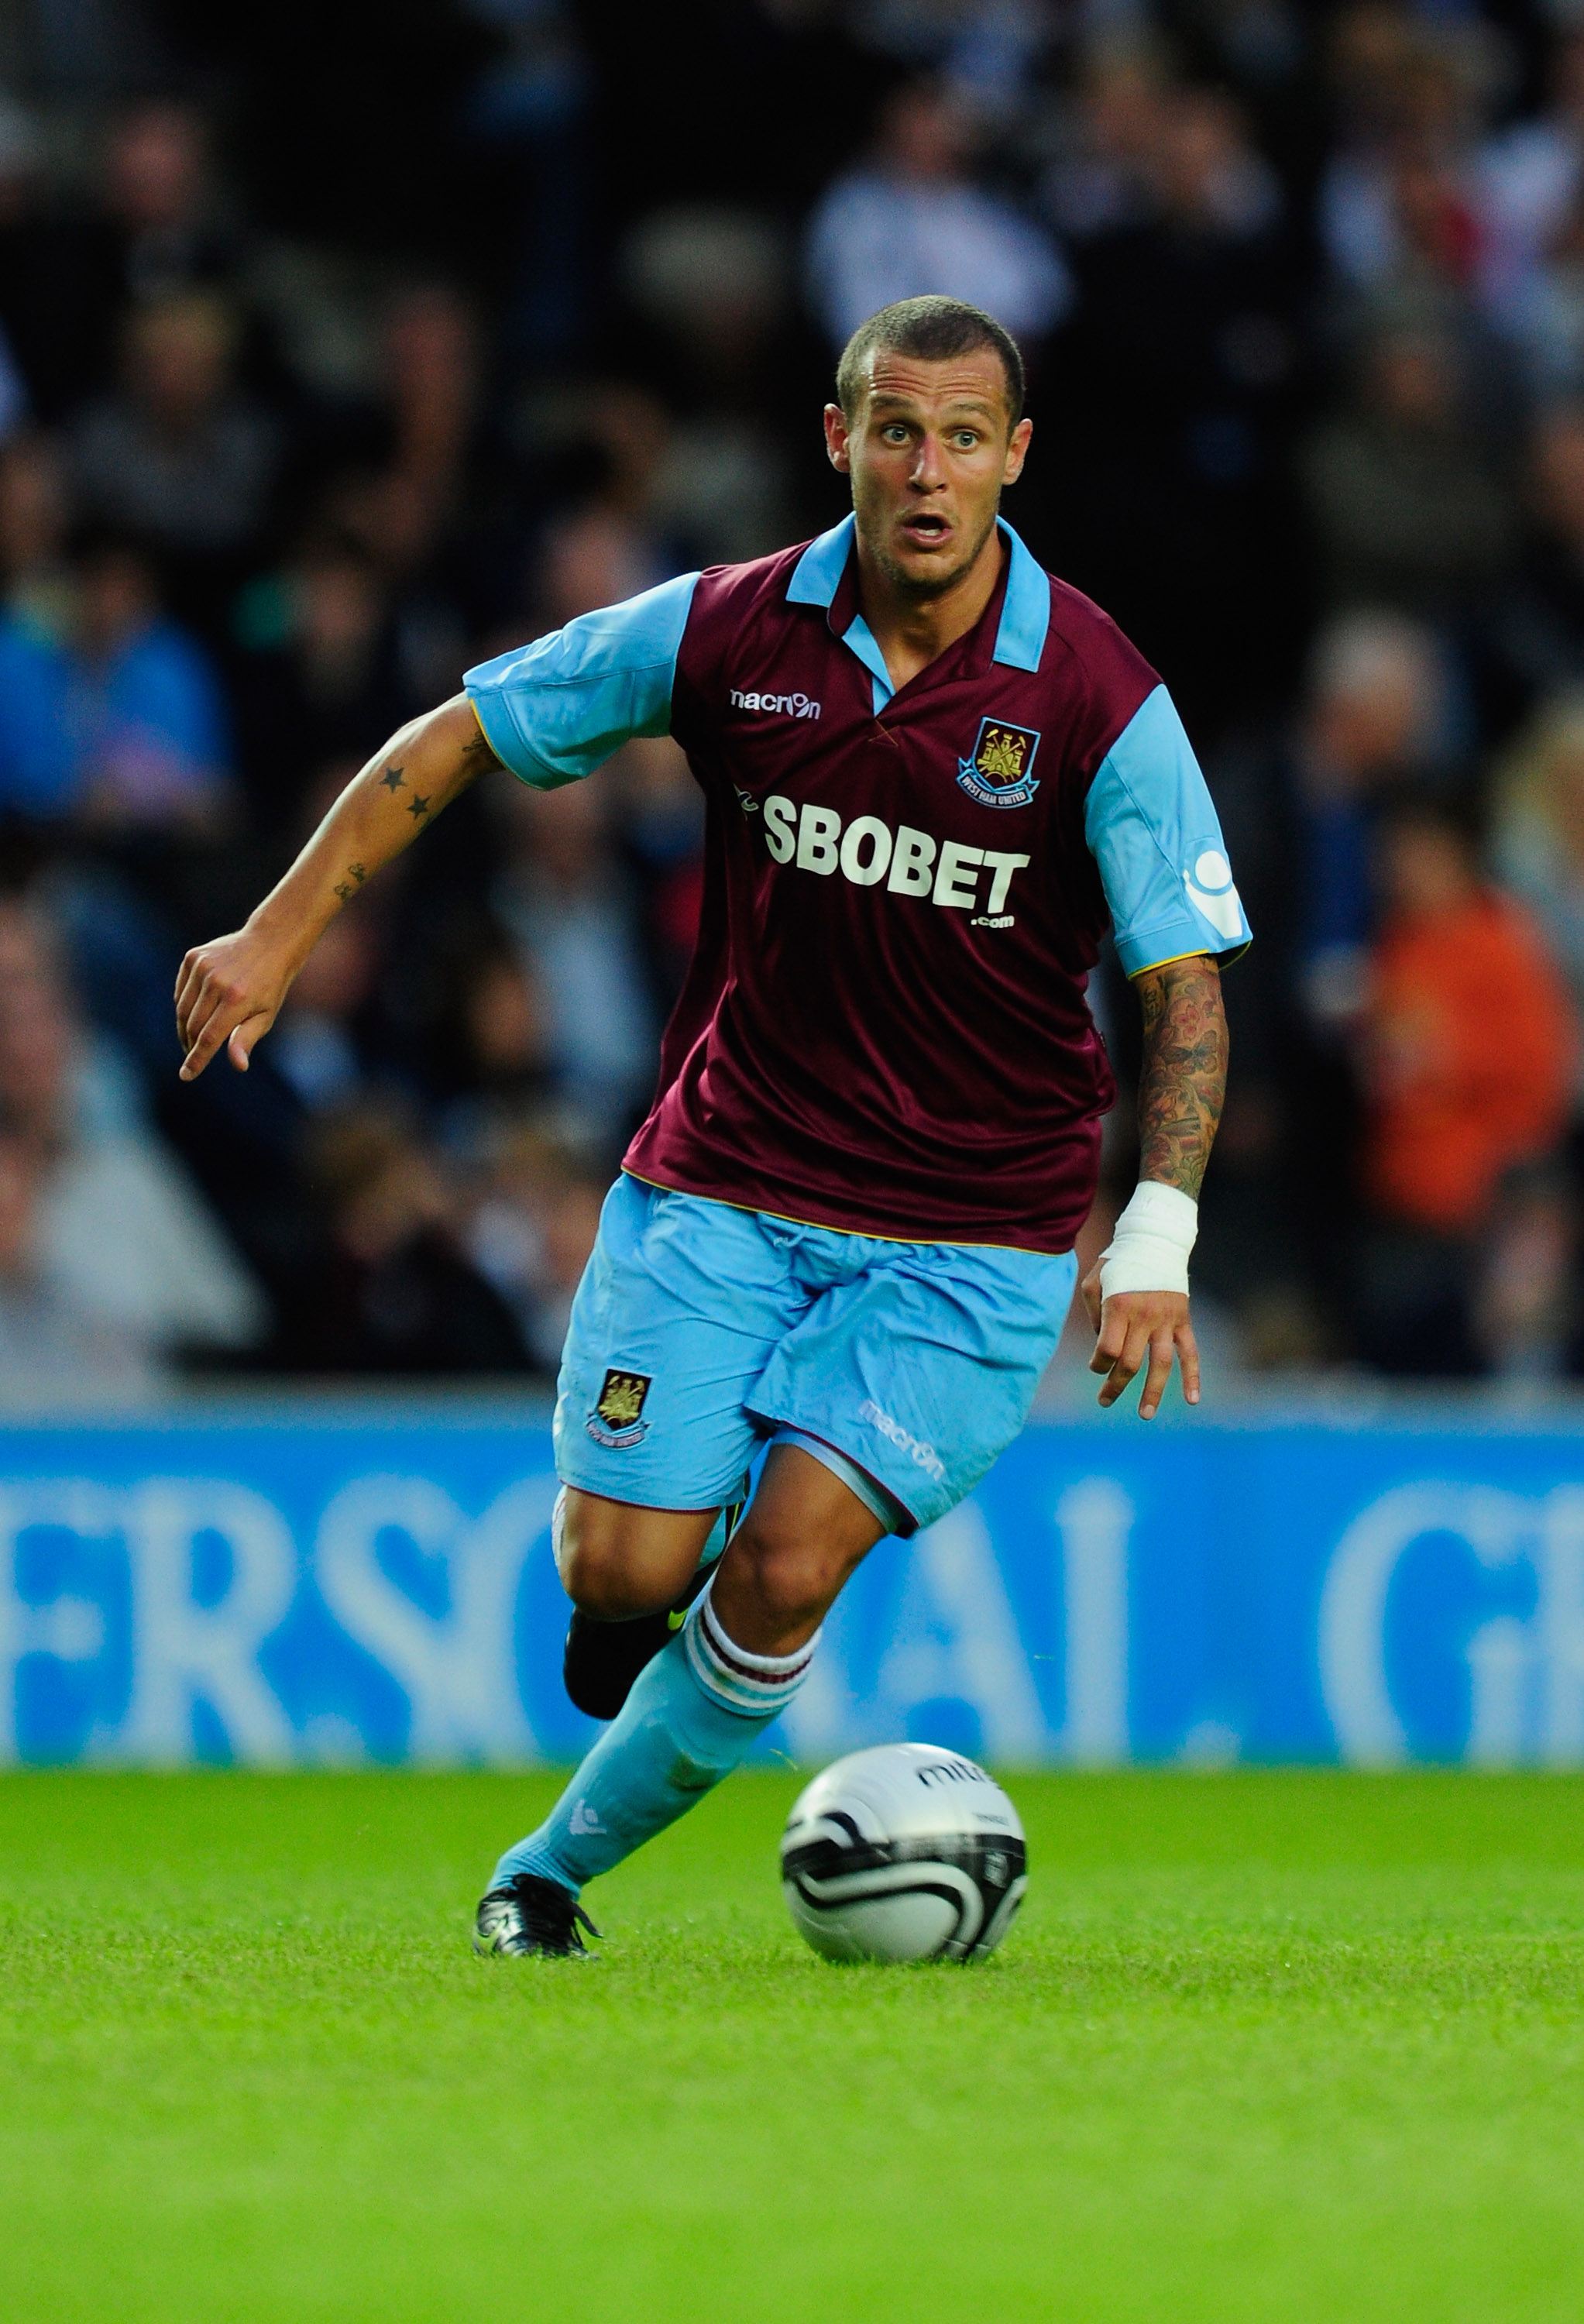 MILTON KEYNES, ENGLAND - JULY 28:  Alessandro Diamanti of West Ham United in action during the pre-season friendly match between MK Dons and West Ham United at the Stadium MK on July 28, 2010 in Milton Keynes, England.  (Photo by Jamie McDonald/Getty Imag